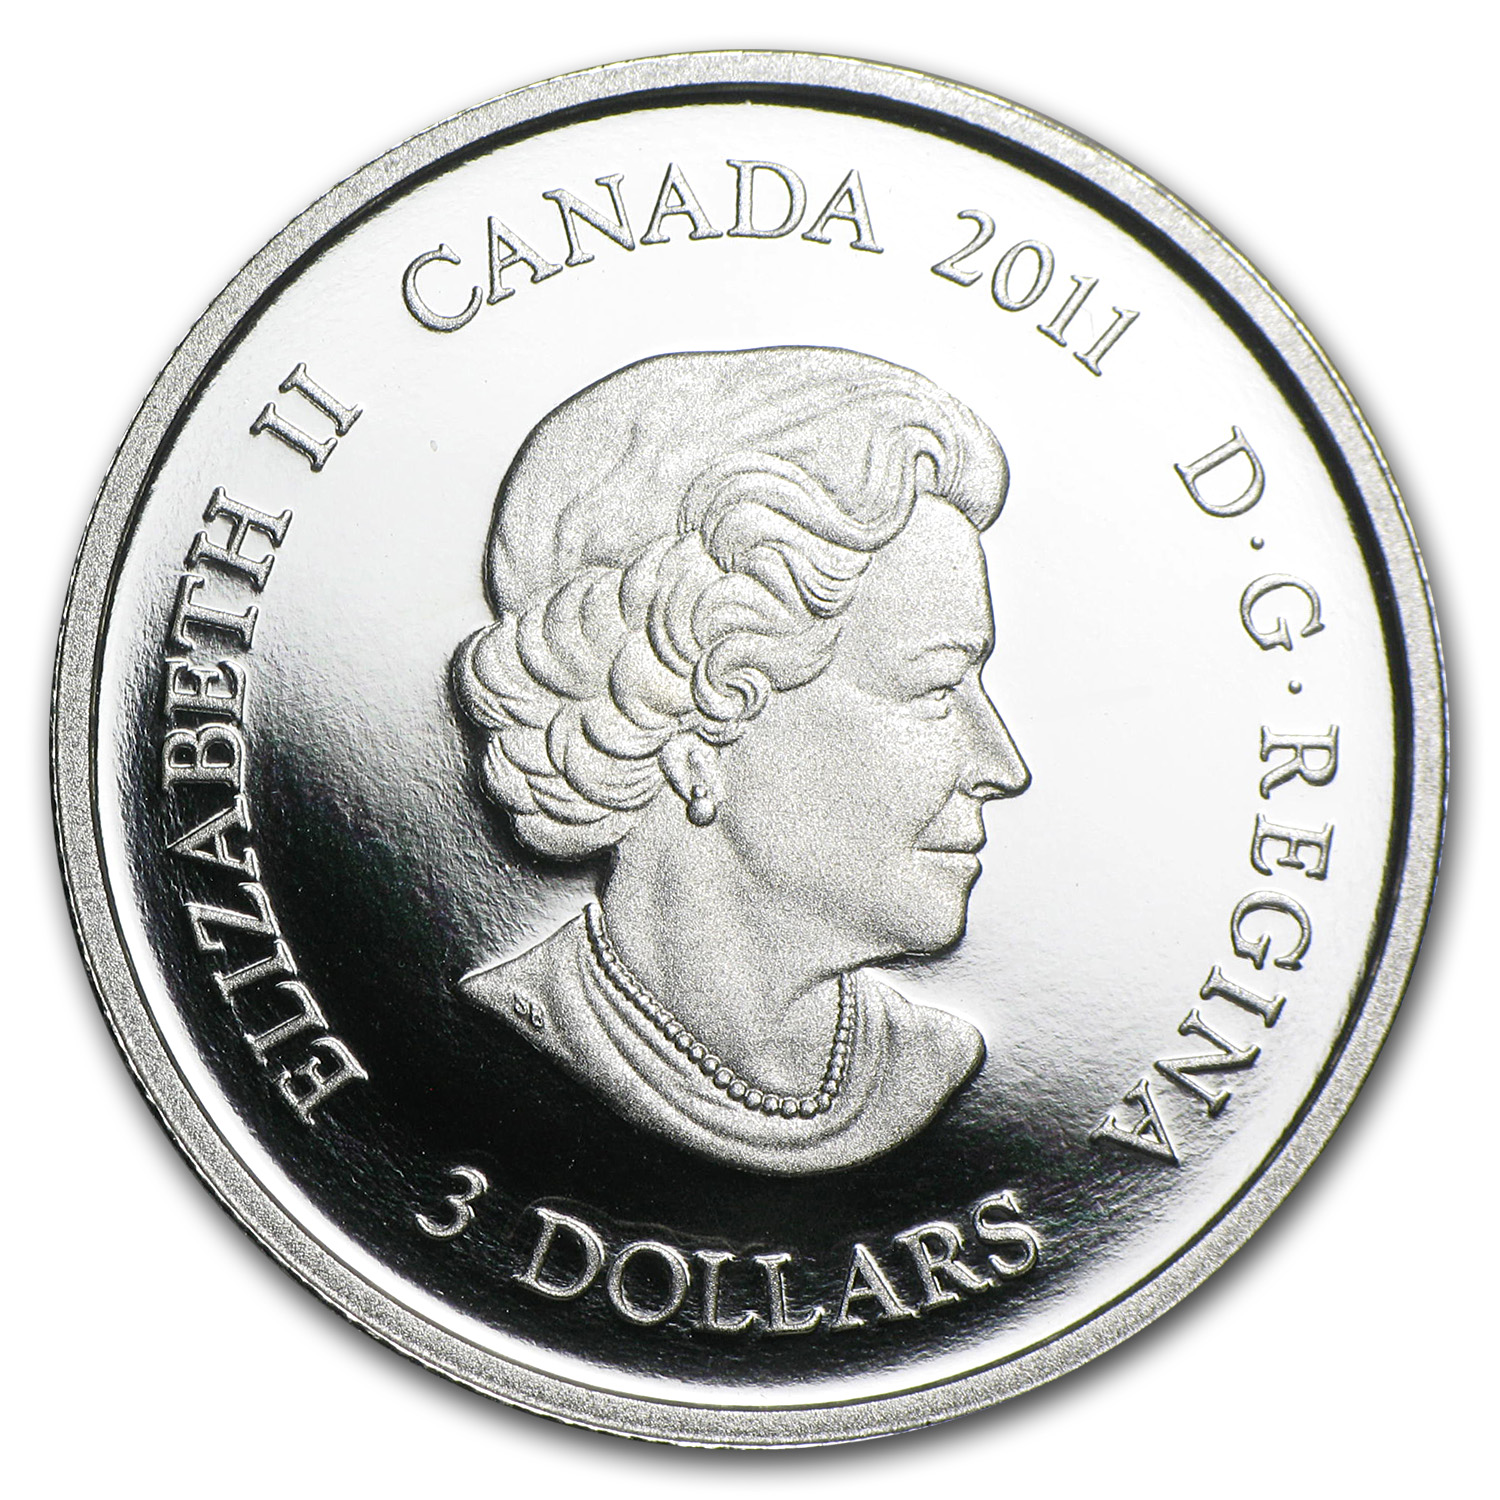 2011 Canada 1/4 oz Silver $3 Family Scene Proof